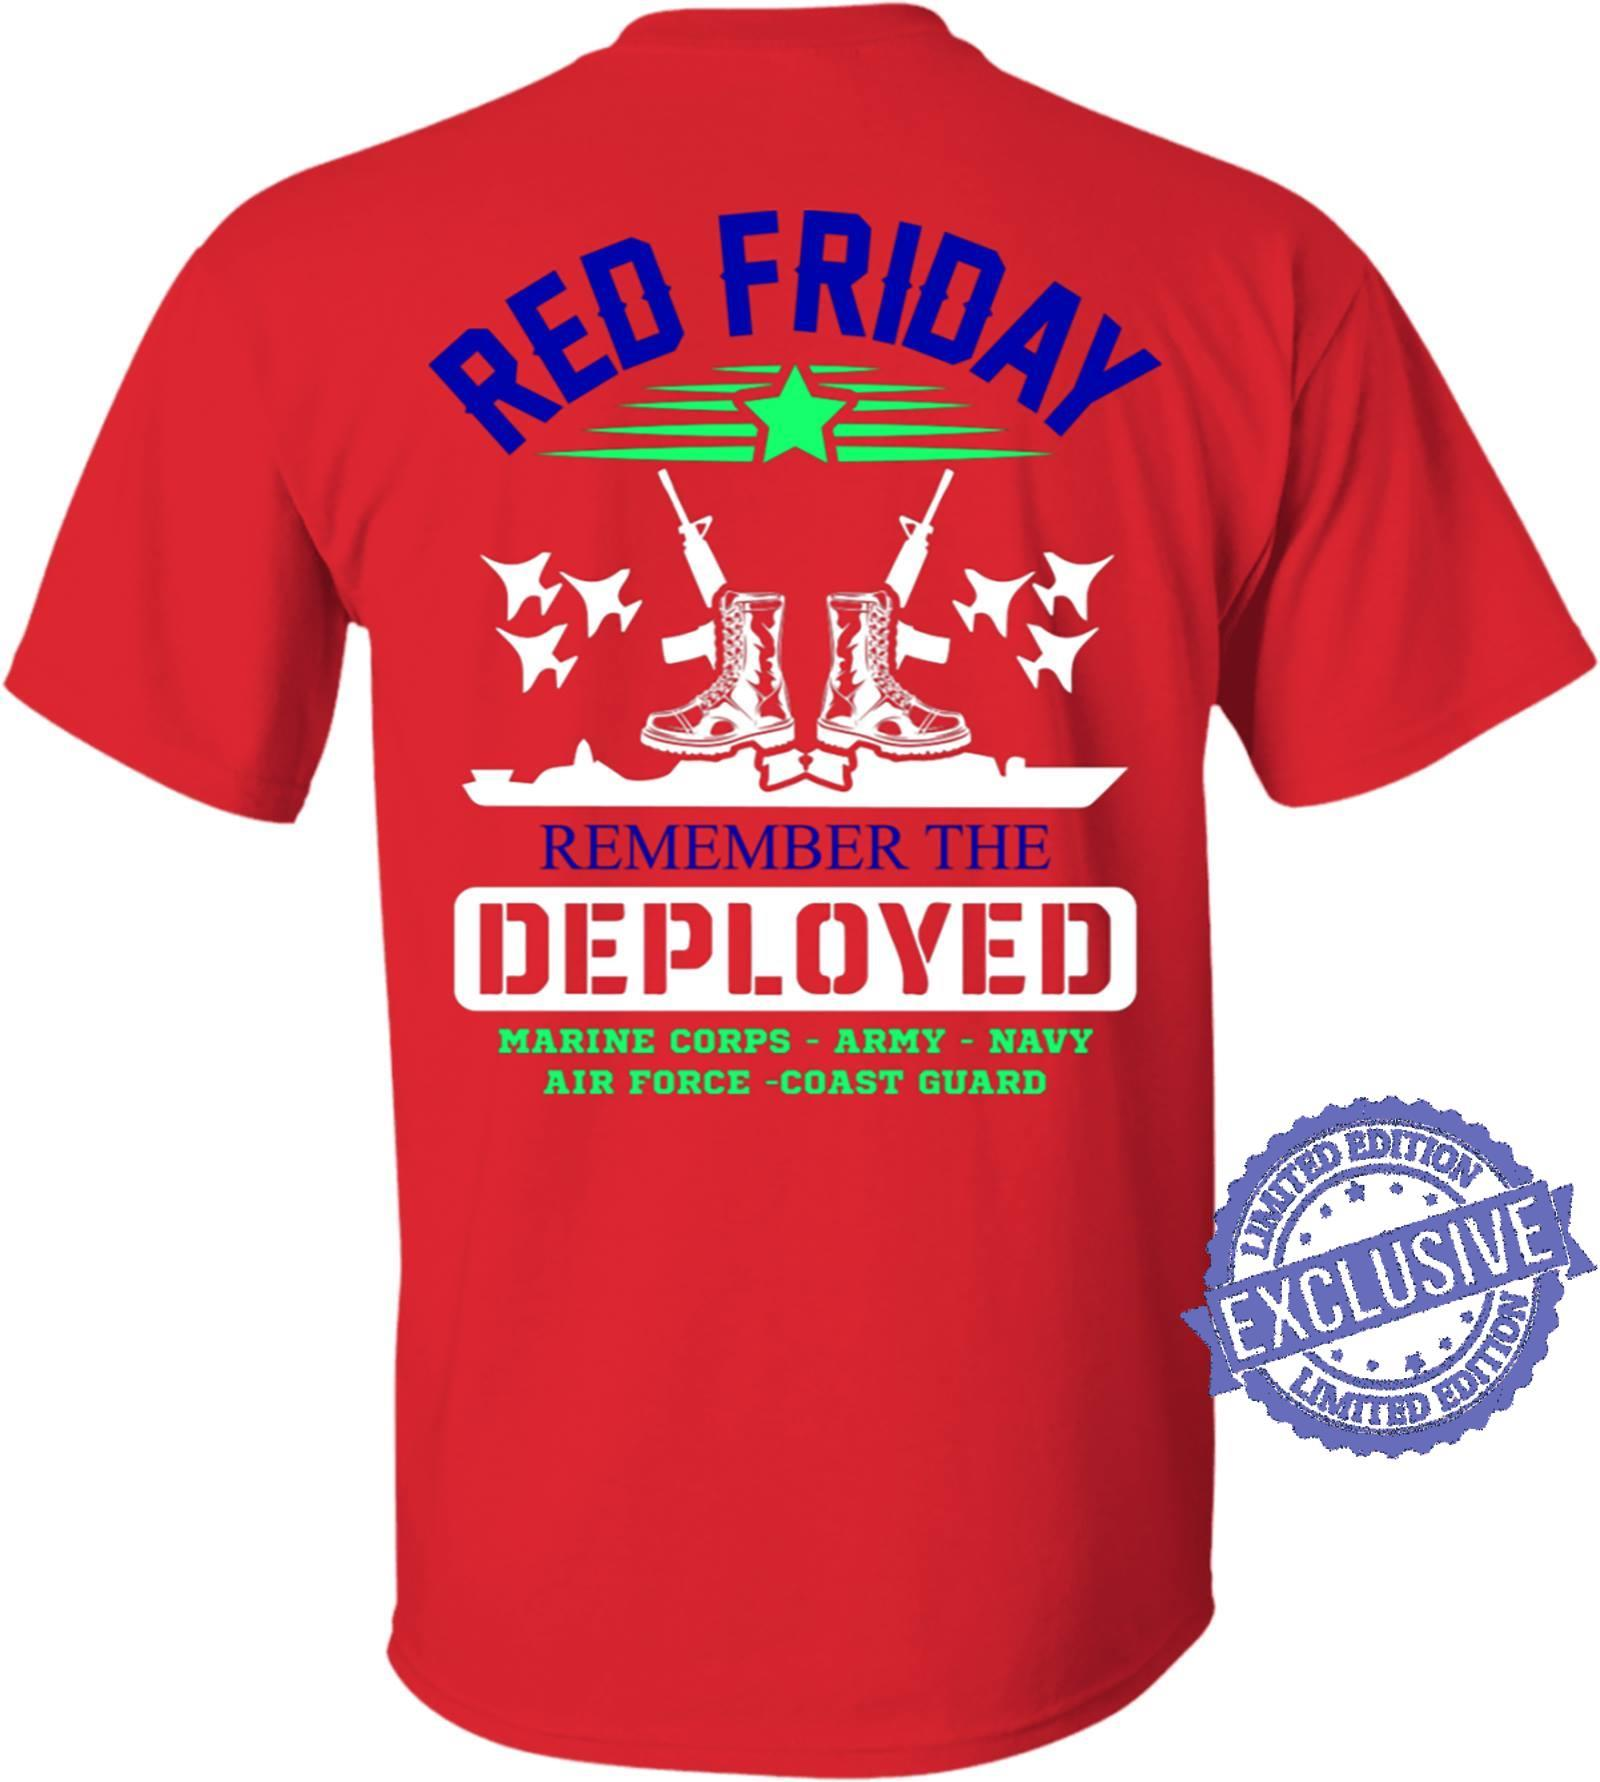 Red friday remember the deplpyed marine corps army navy air force coast guard shirt